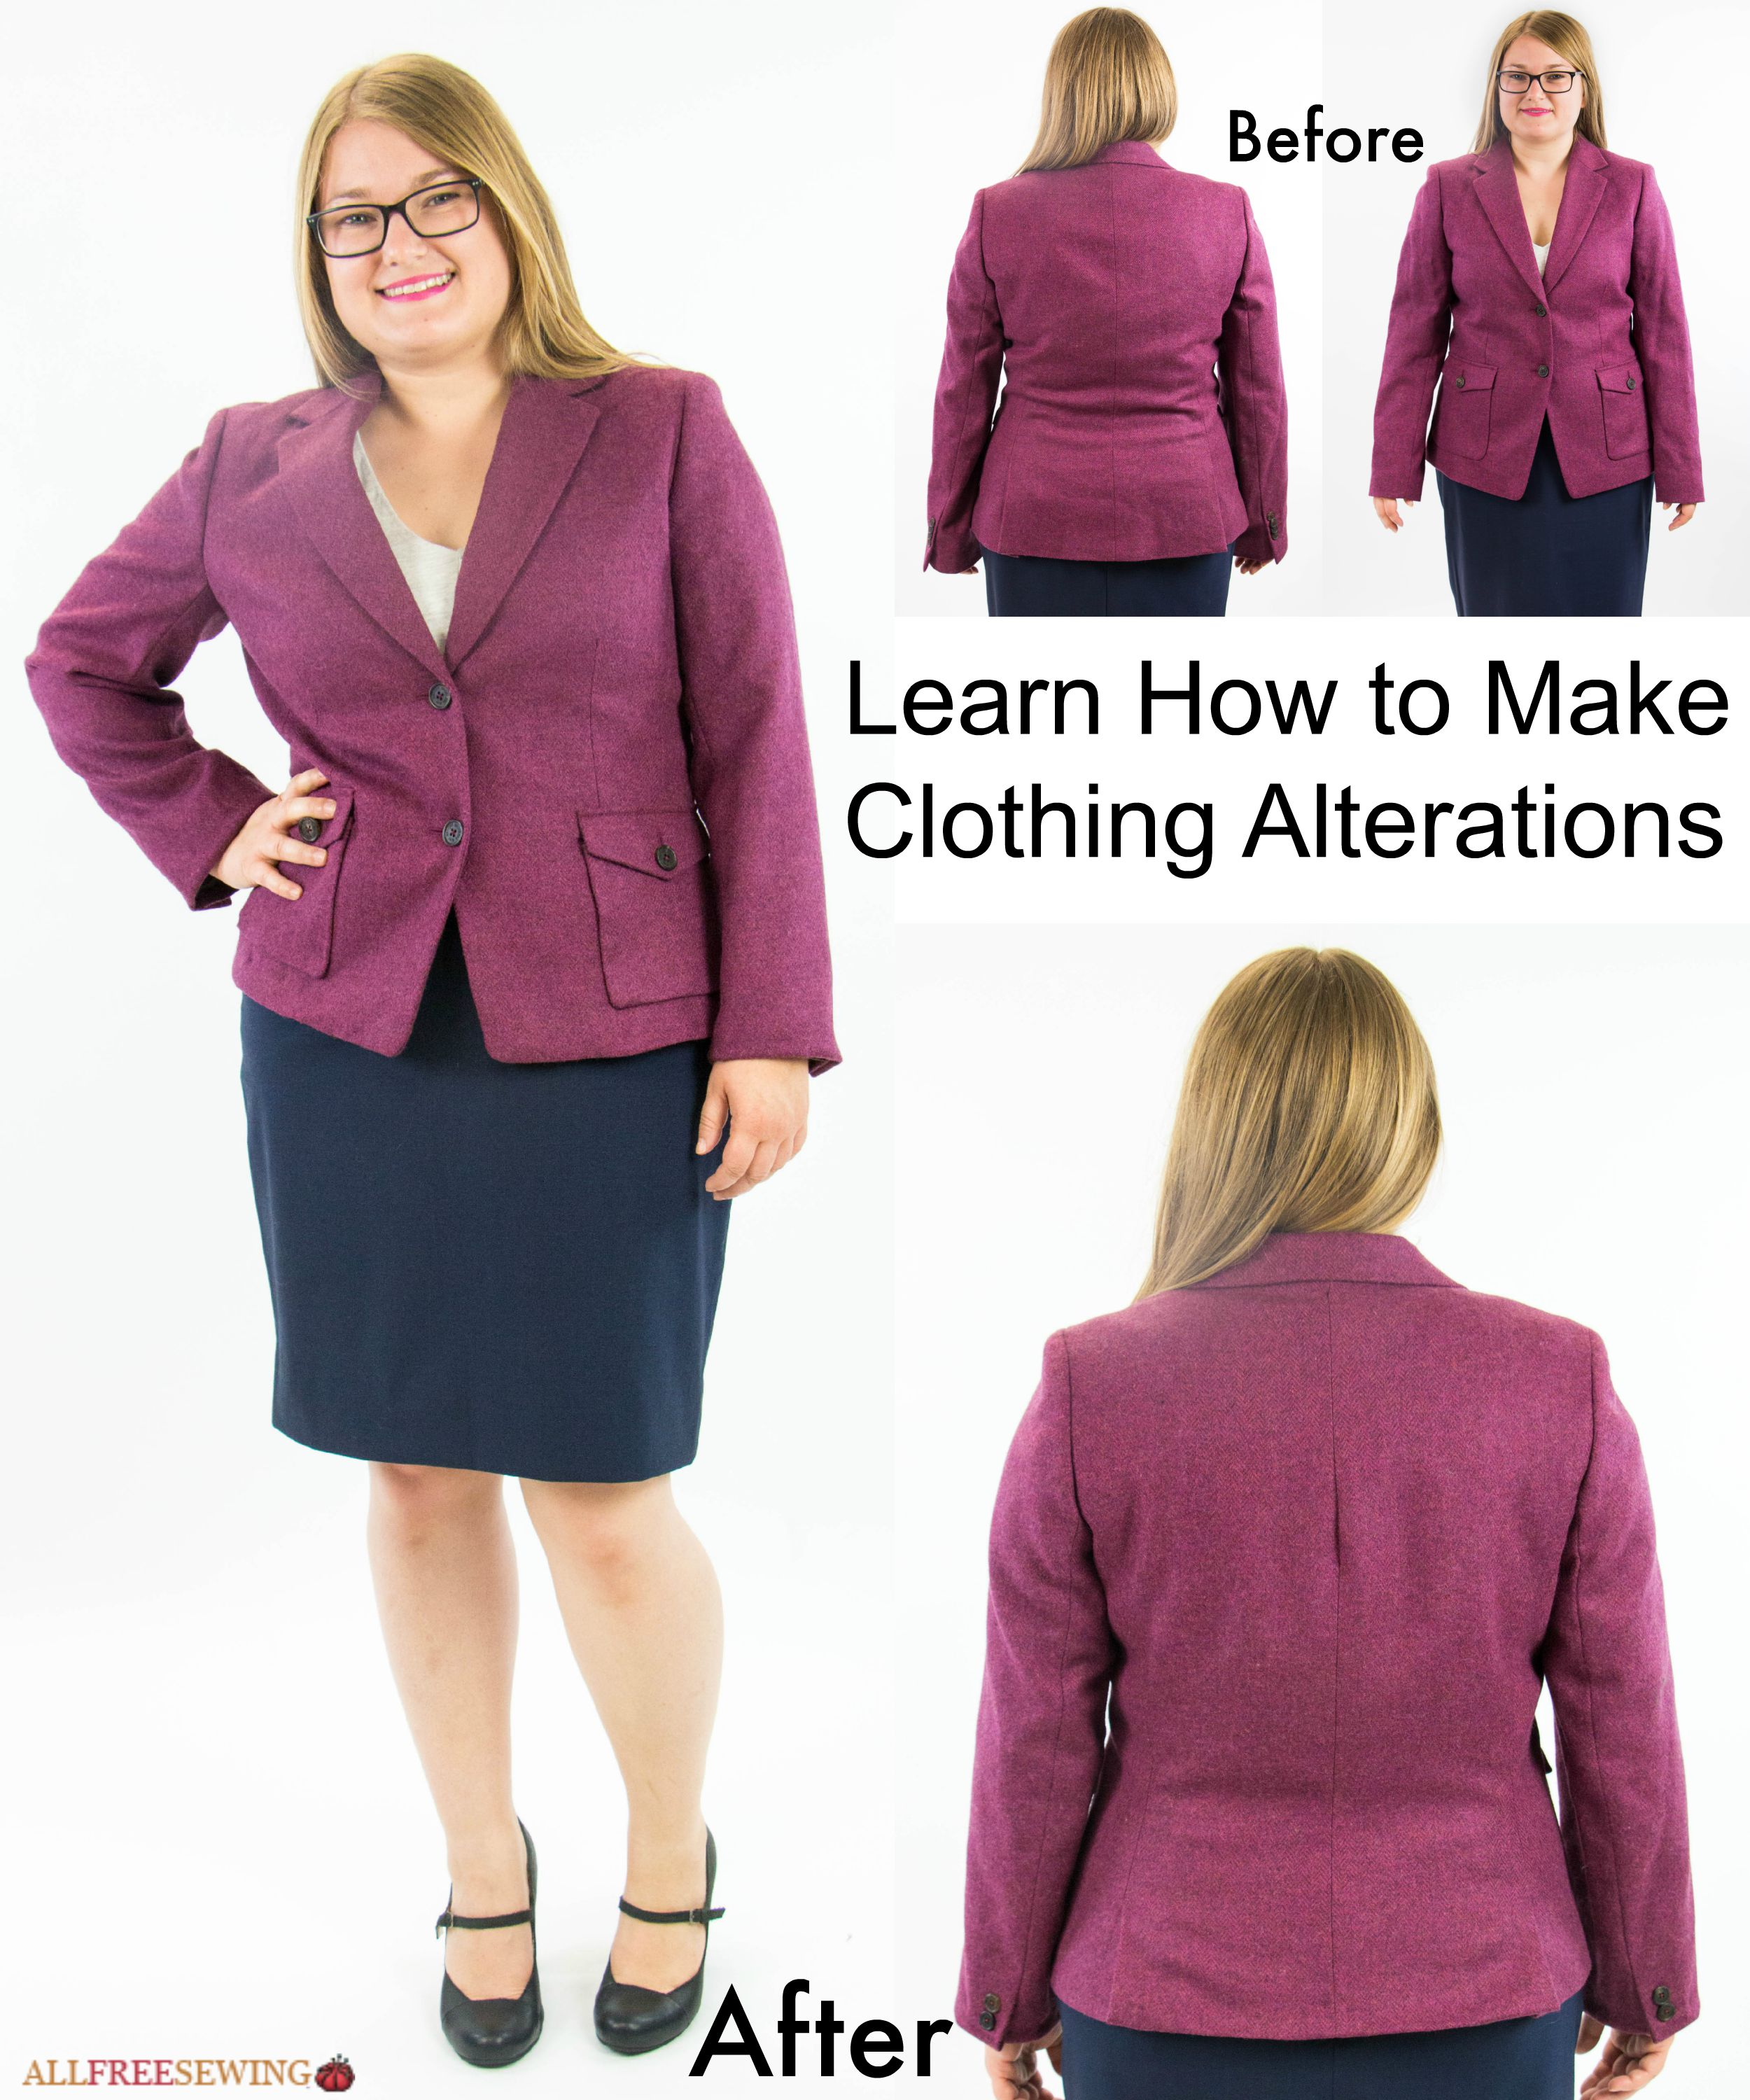 clothingalterations